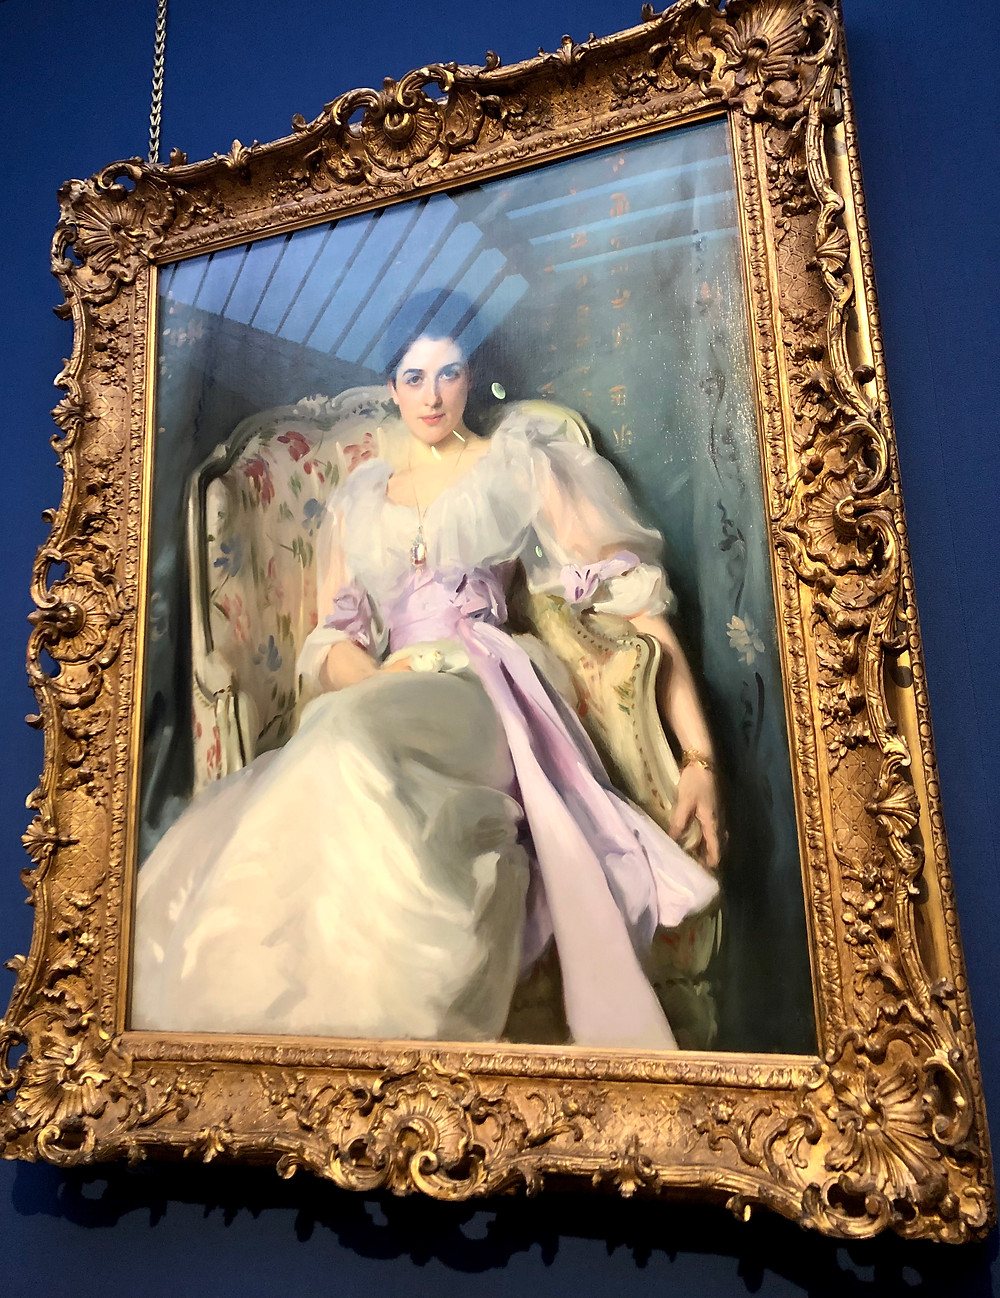 lady agnew of lochnaw John Singer Sargent portrait from scottish national gallery edinburgh